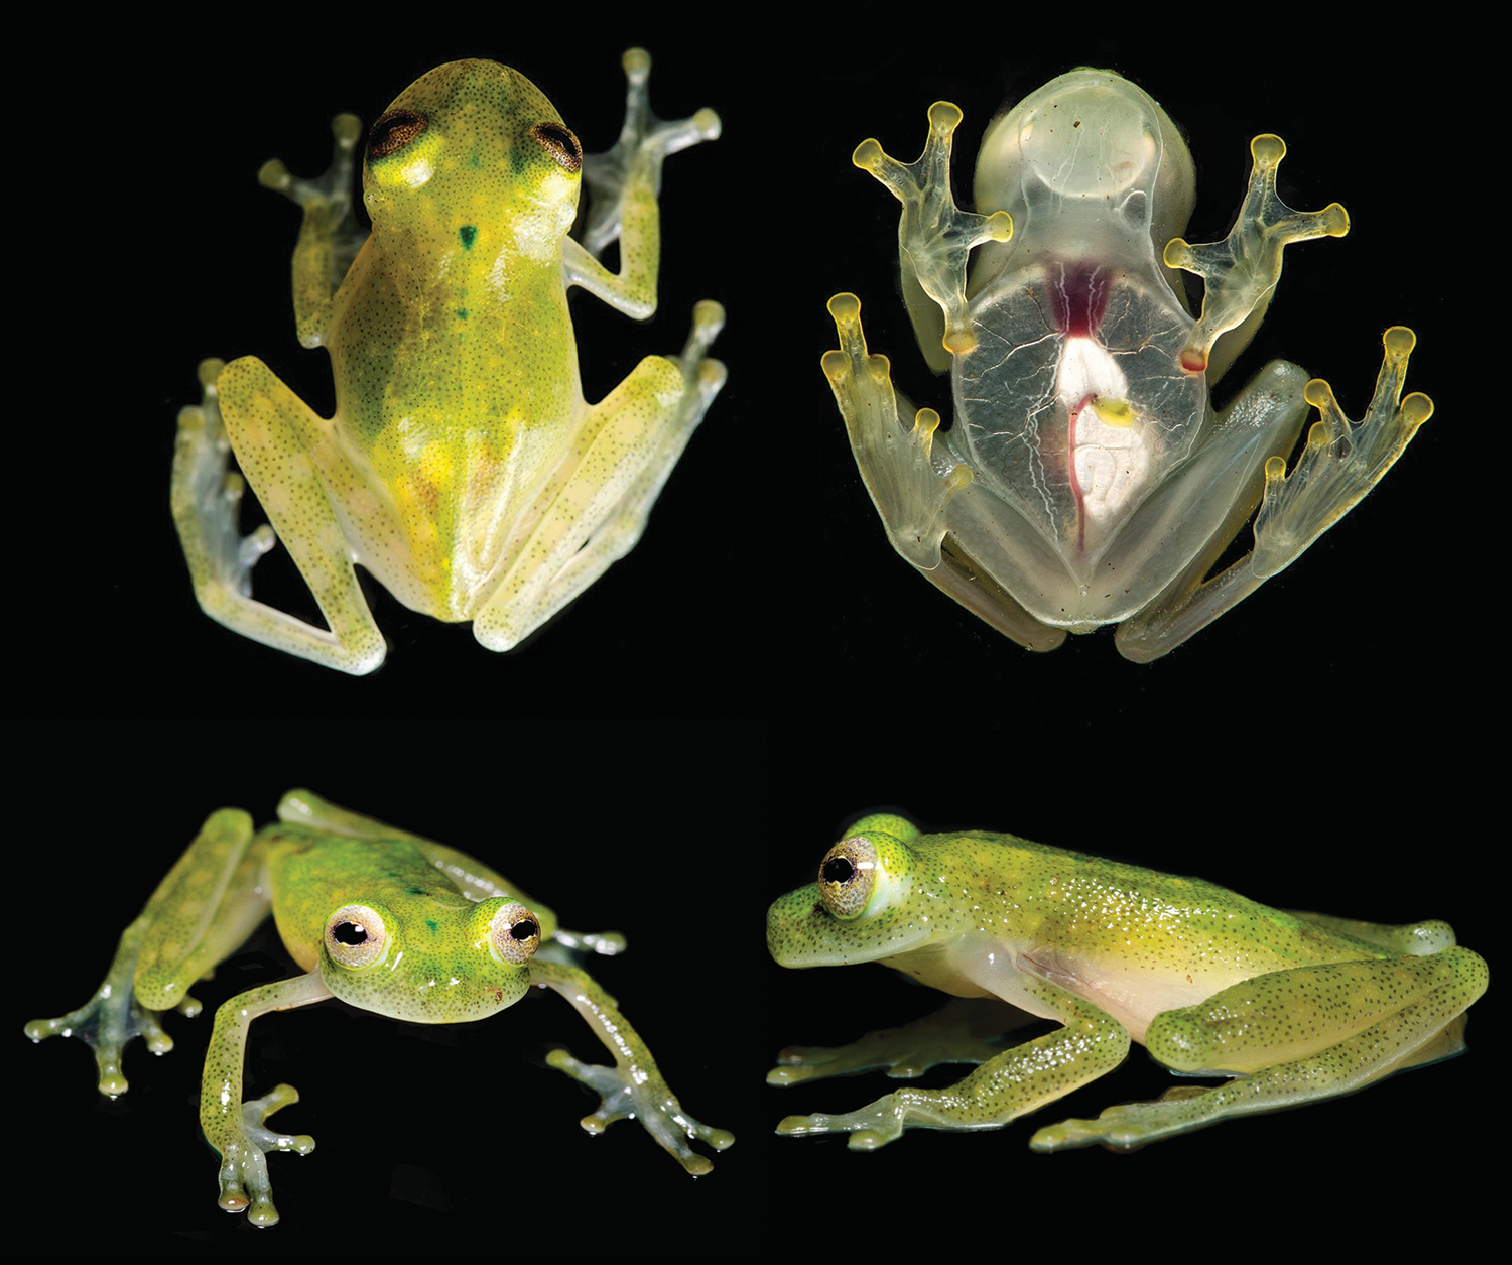 Have a look: The transparent Hyalinobatrachium yaku frog